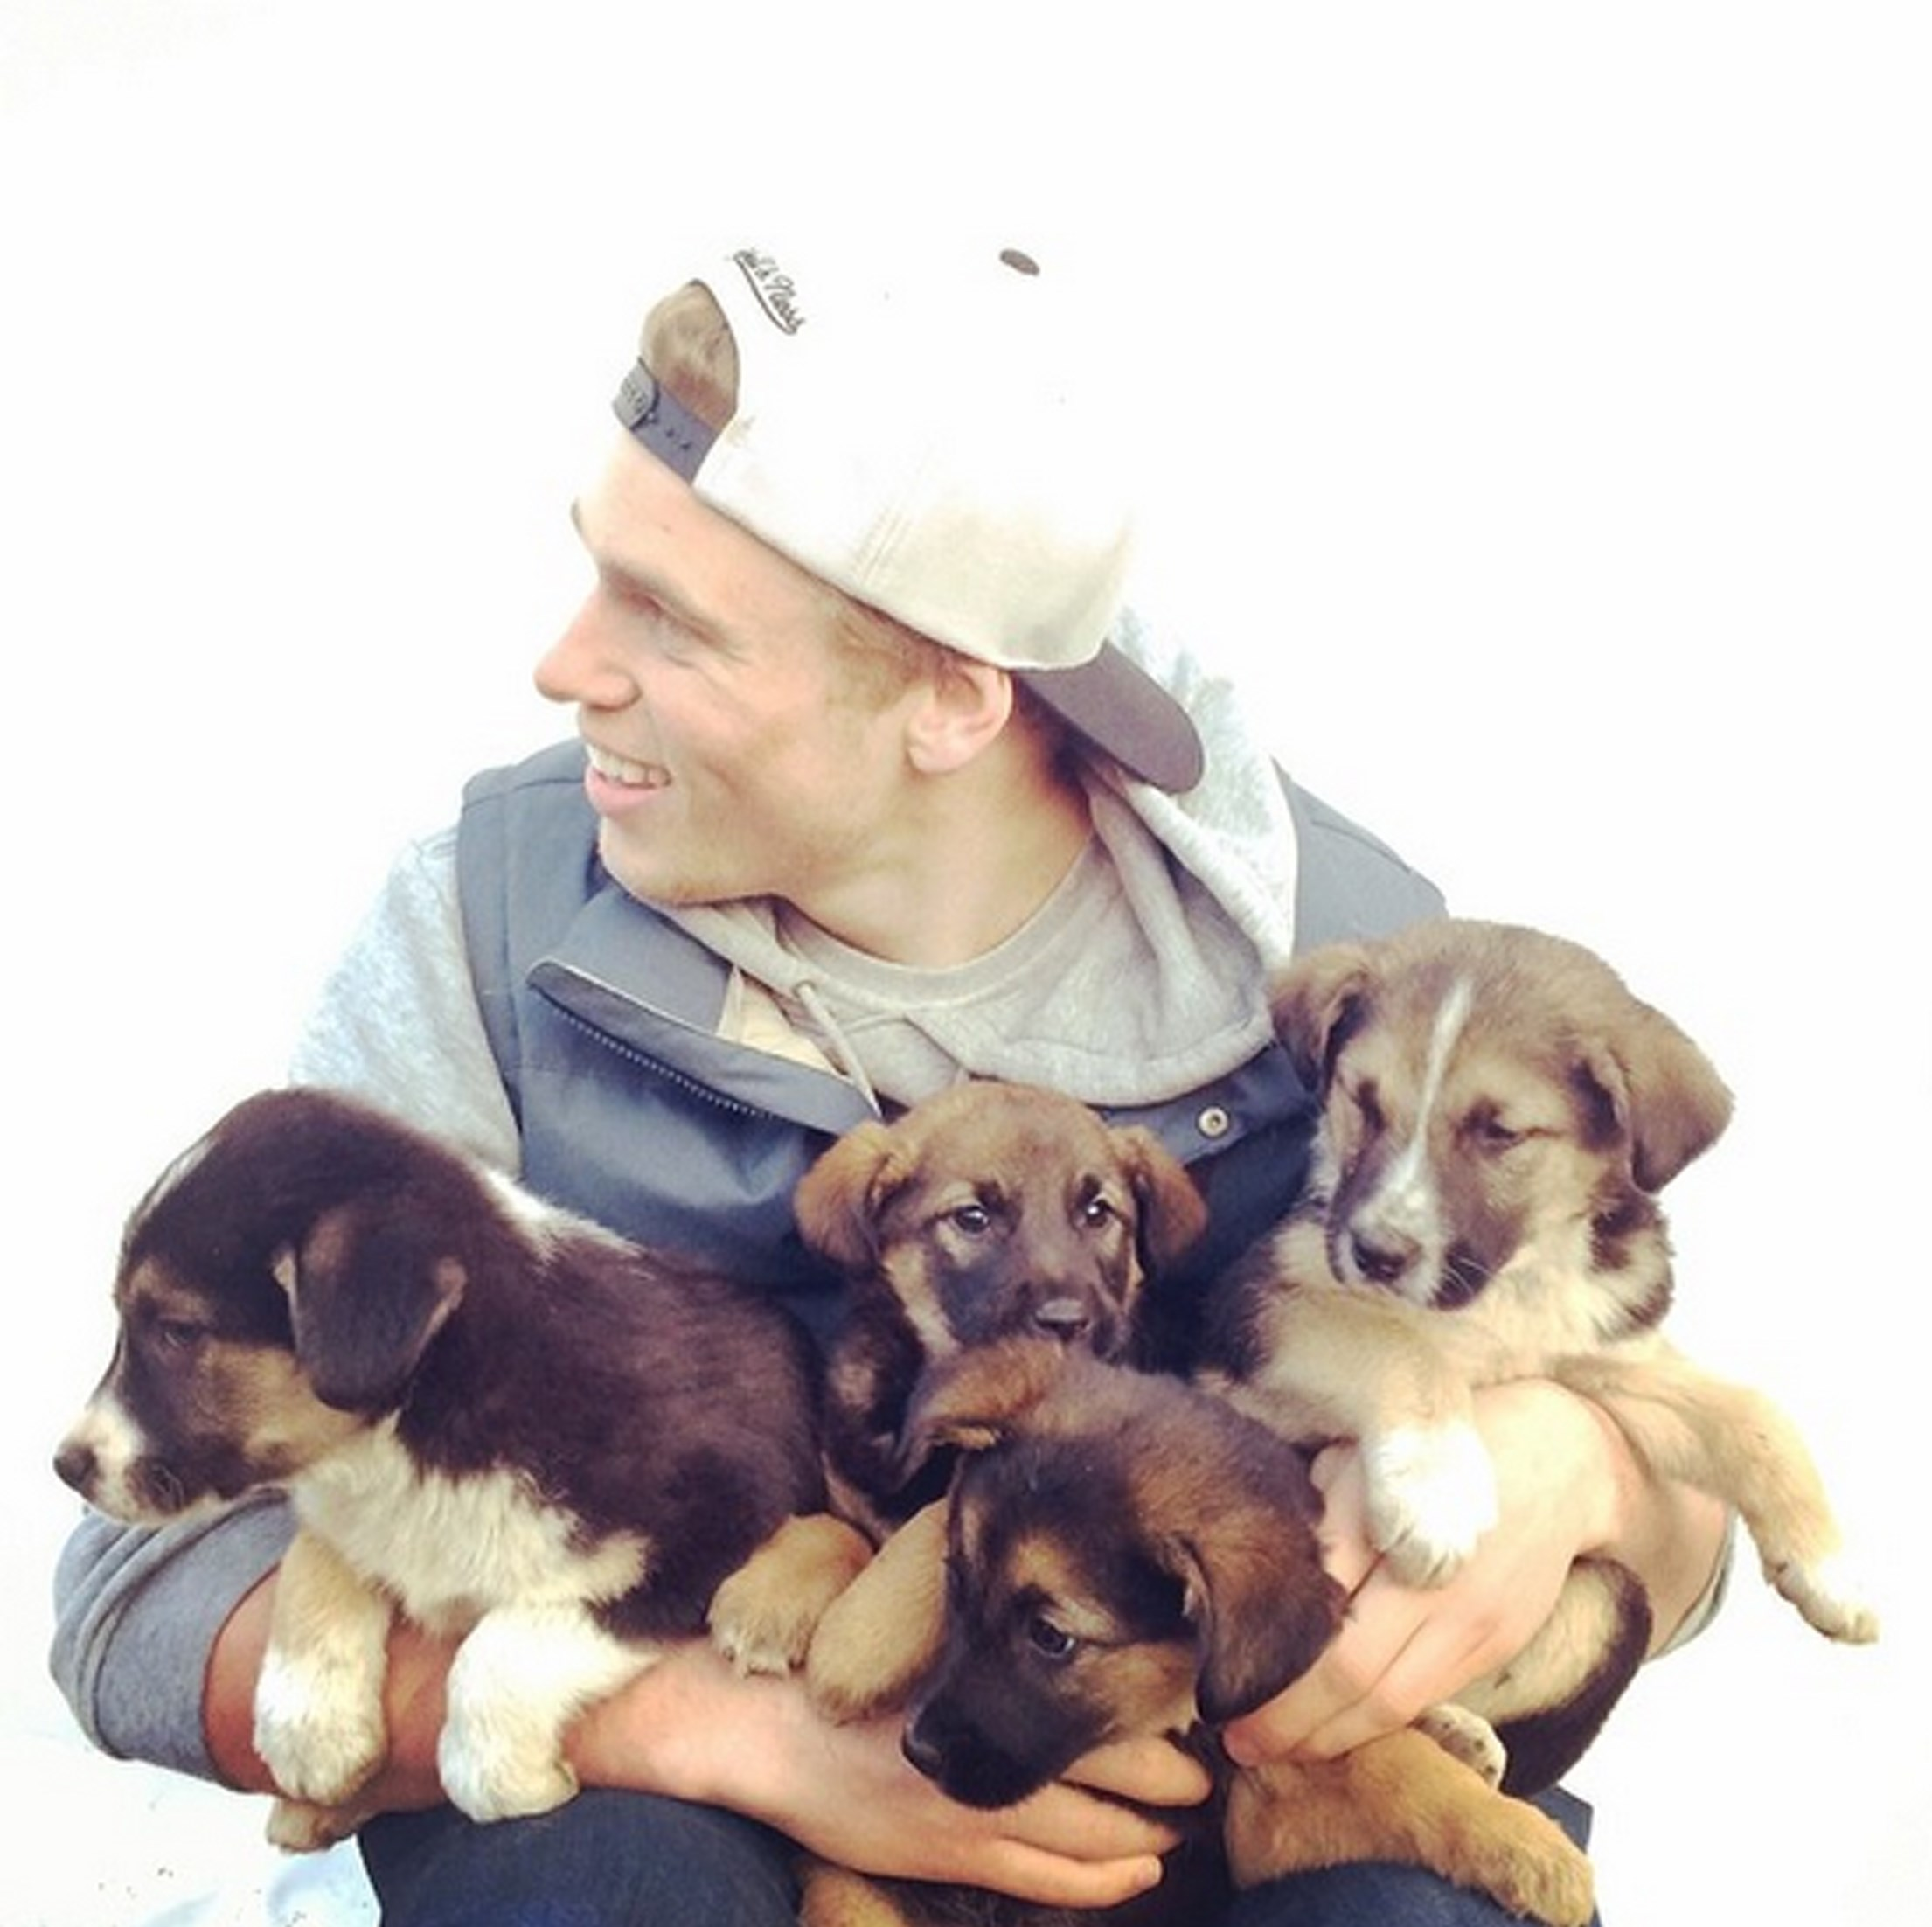 Gus Kenworthy in the Olympic Village in Sochi, Russia, with the street puppies he found and rescued. This picture, taken by his friend, freelance photographer Robin Macdonald, went viral on social media and deluged the silver medalist with interview requests from the media.